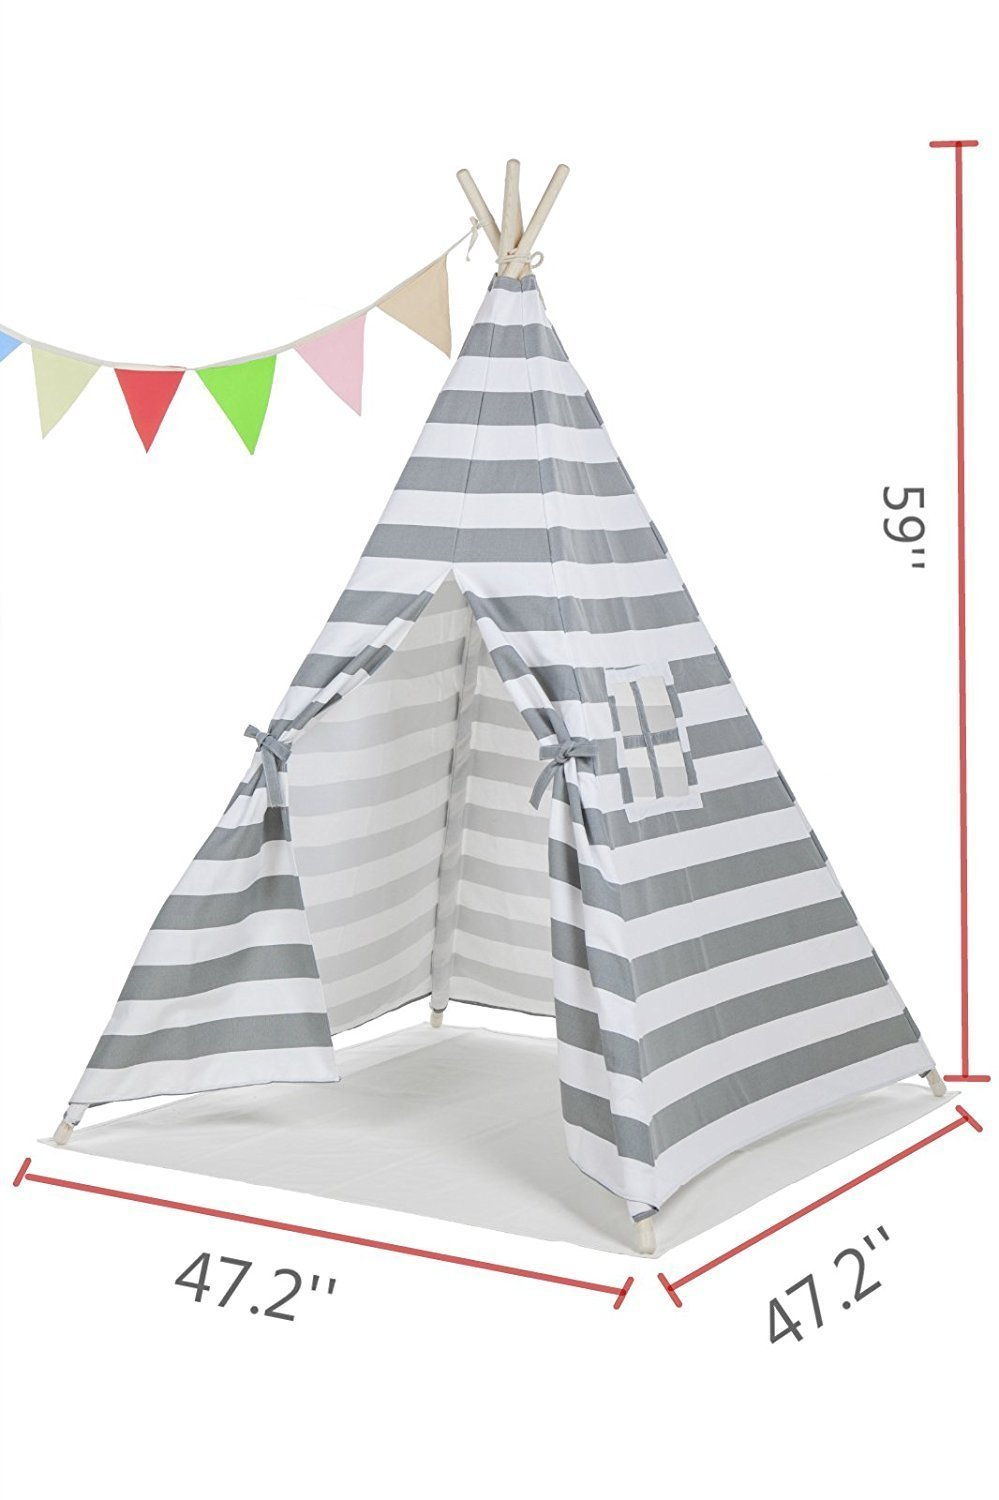 ABULU 6' Indoor Indian Playhouse Toy Teepee Play Tent for Kids Toddlers Canvas Teepee With Carry Case With Mat (Grey Stripe)